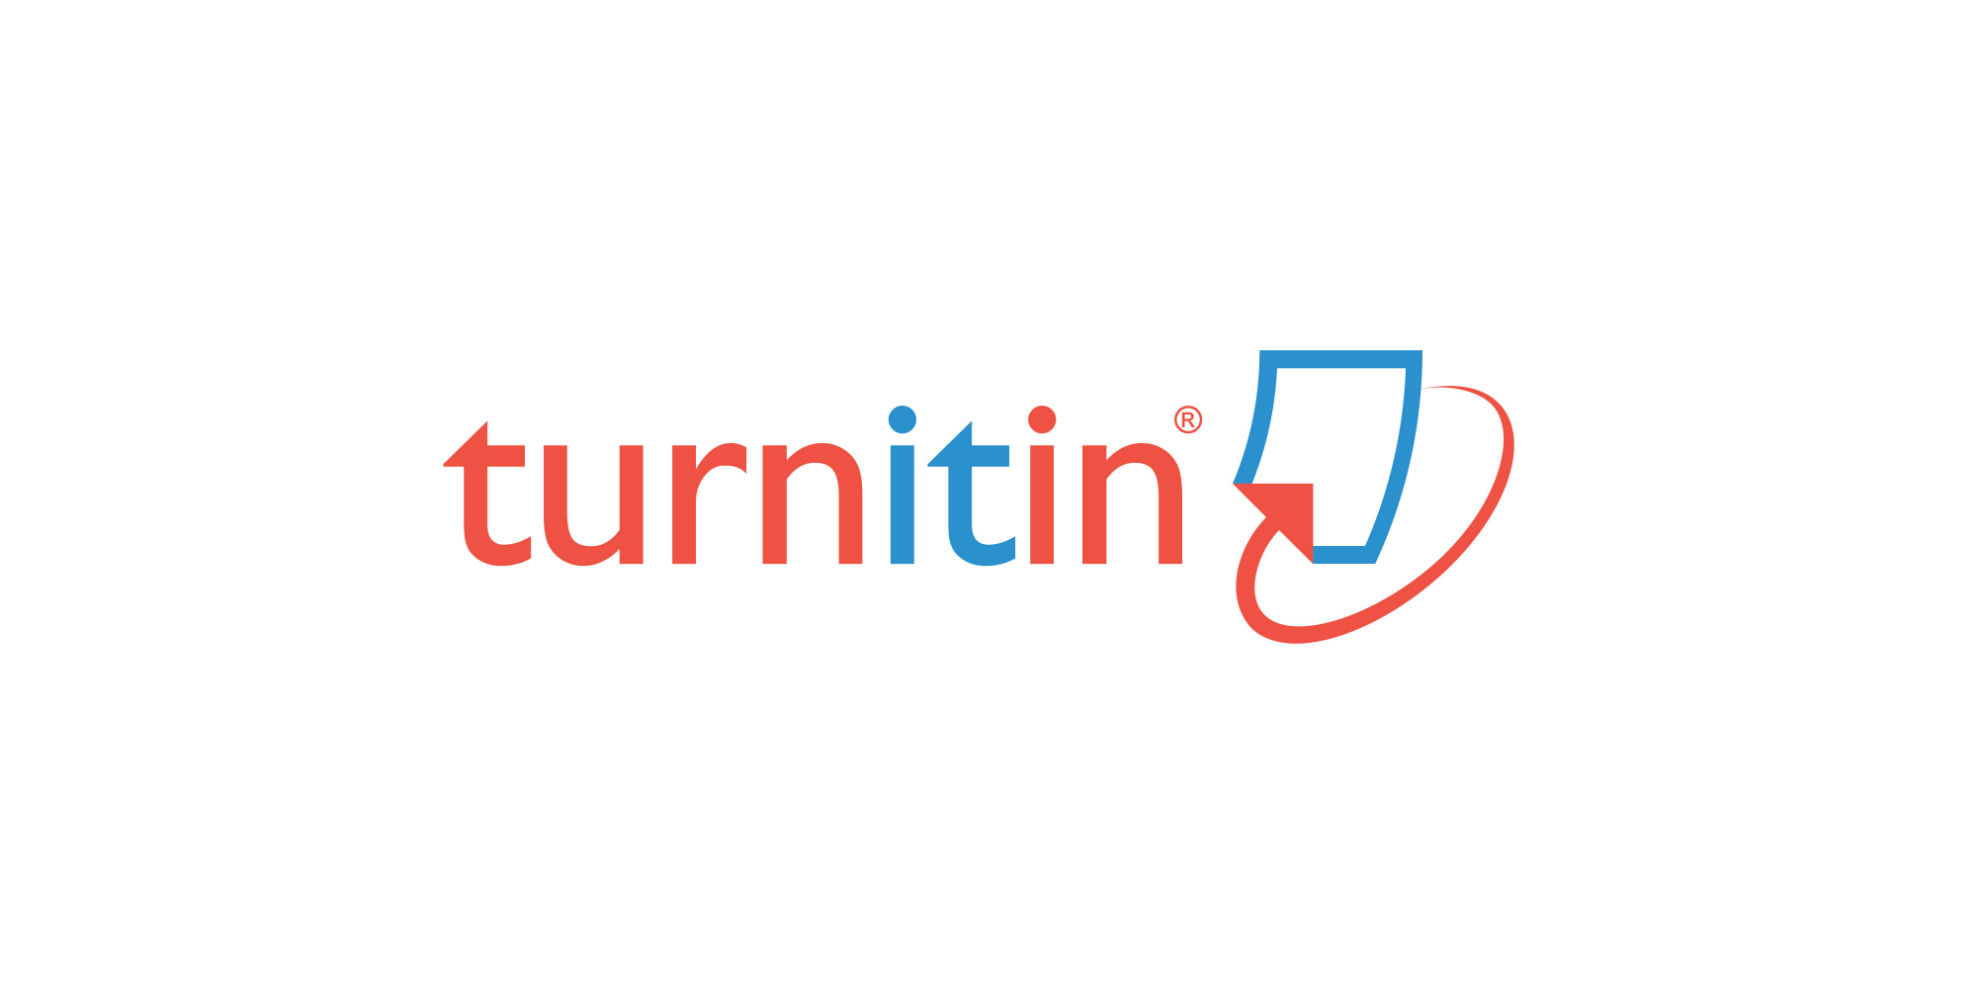 Receiving and marking assignments in Turnitin | 23 July [cancelled]